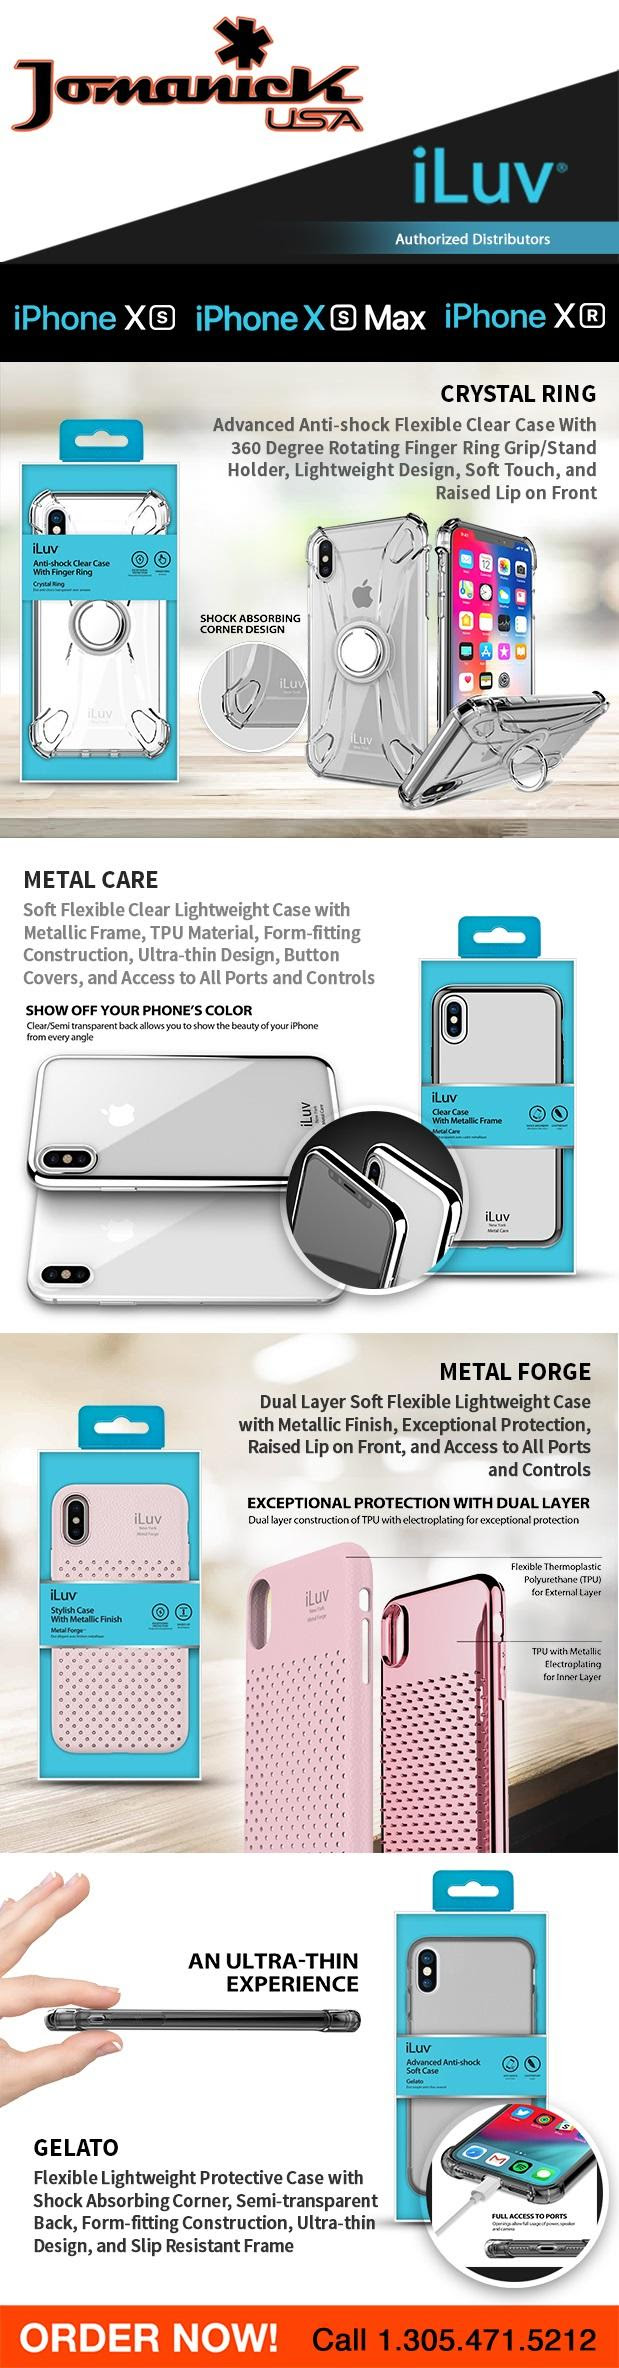 Wholesale cases for iPhone Xs, iPhone Xs Max, iPhone Xr